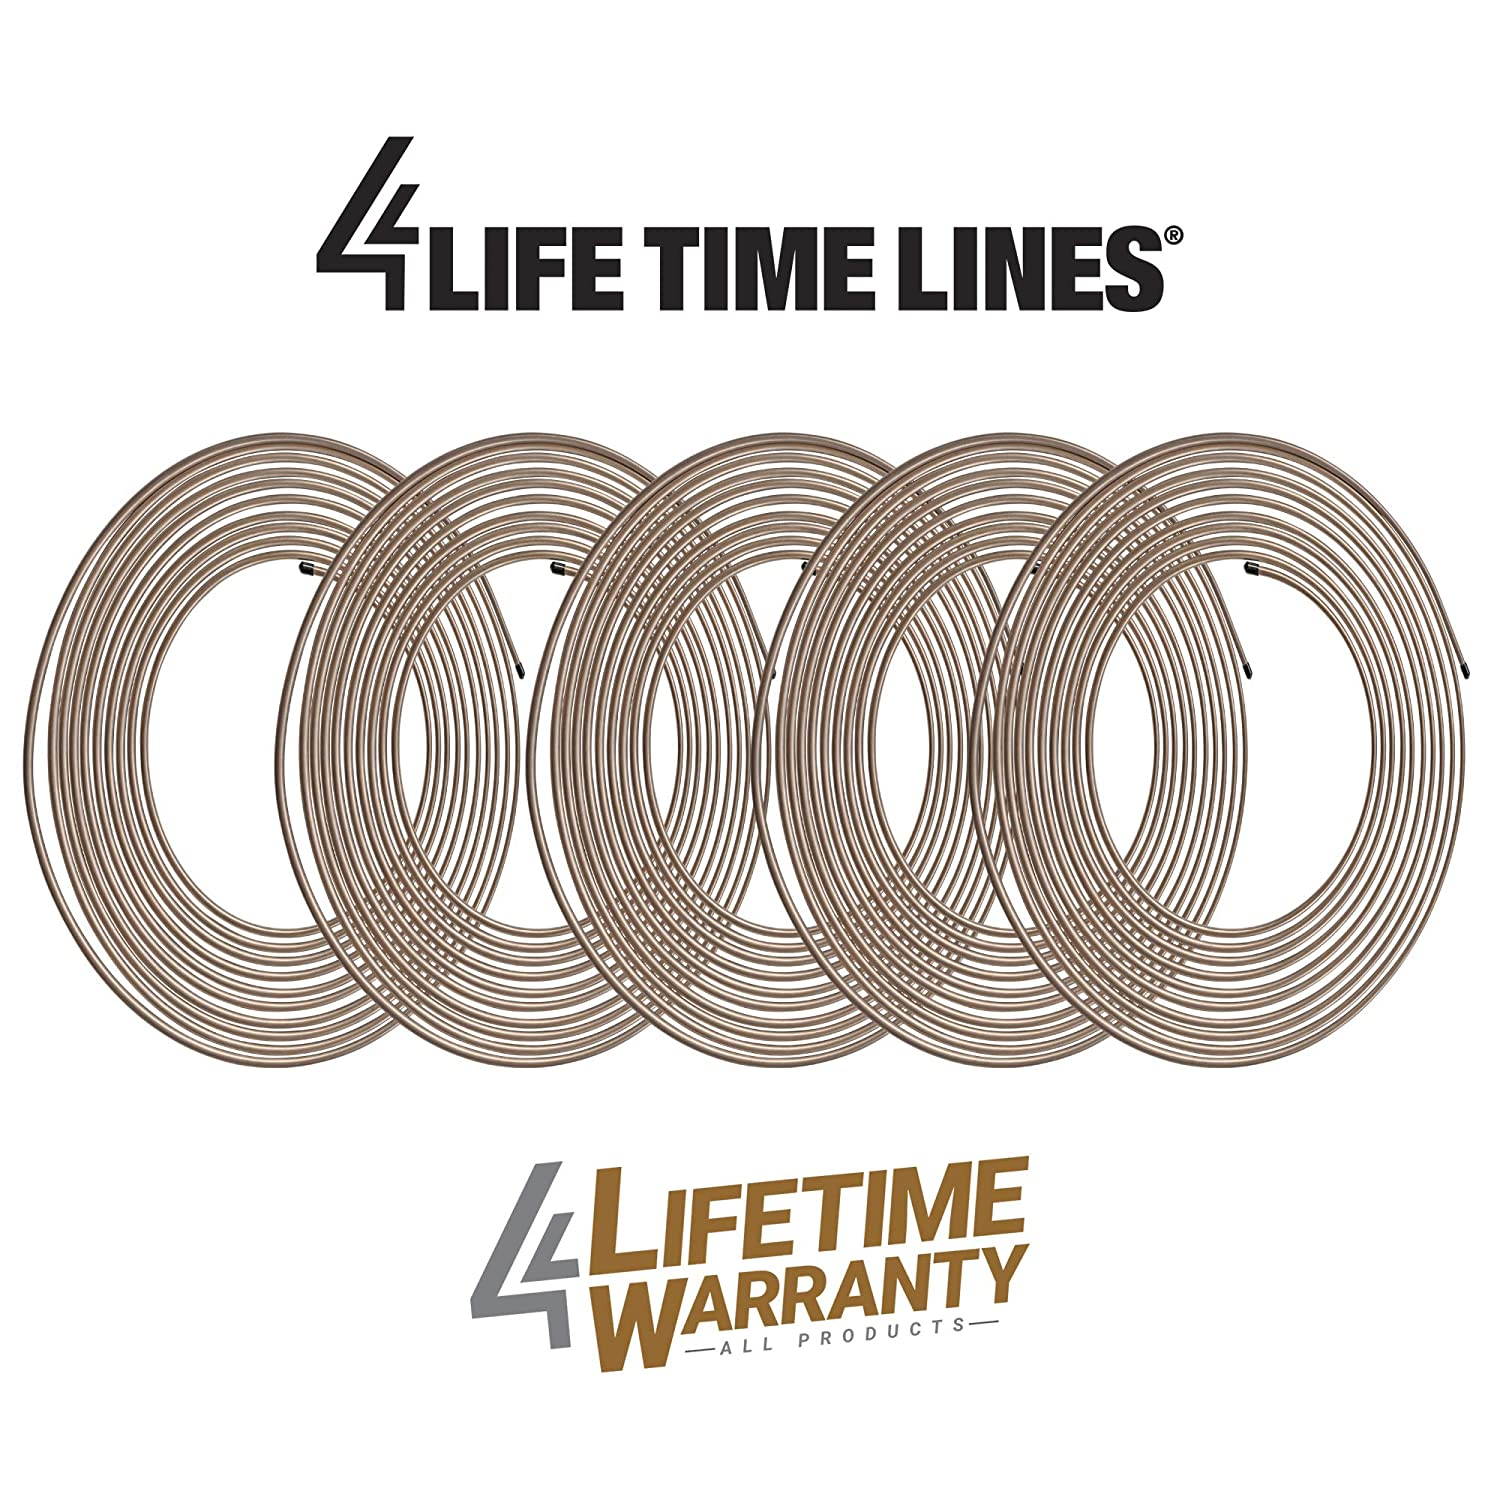 Adapter 9 SKU 4LIFETIMELINES Fitting Assortment 3//16 Metric Tube Nut Union